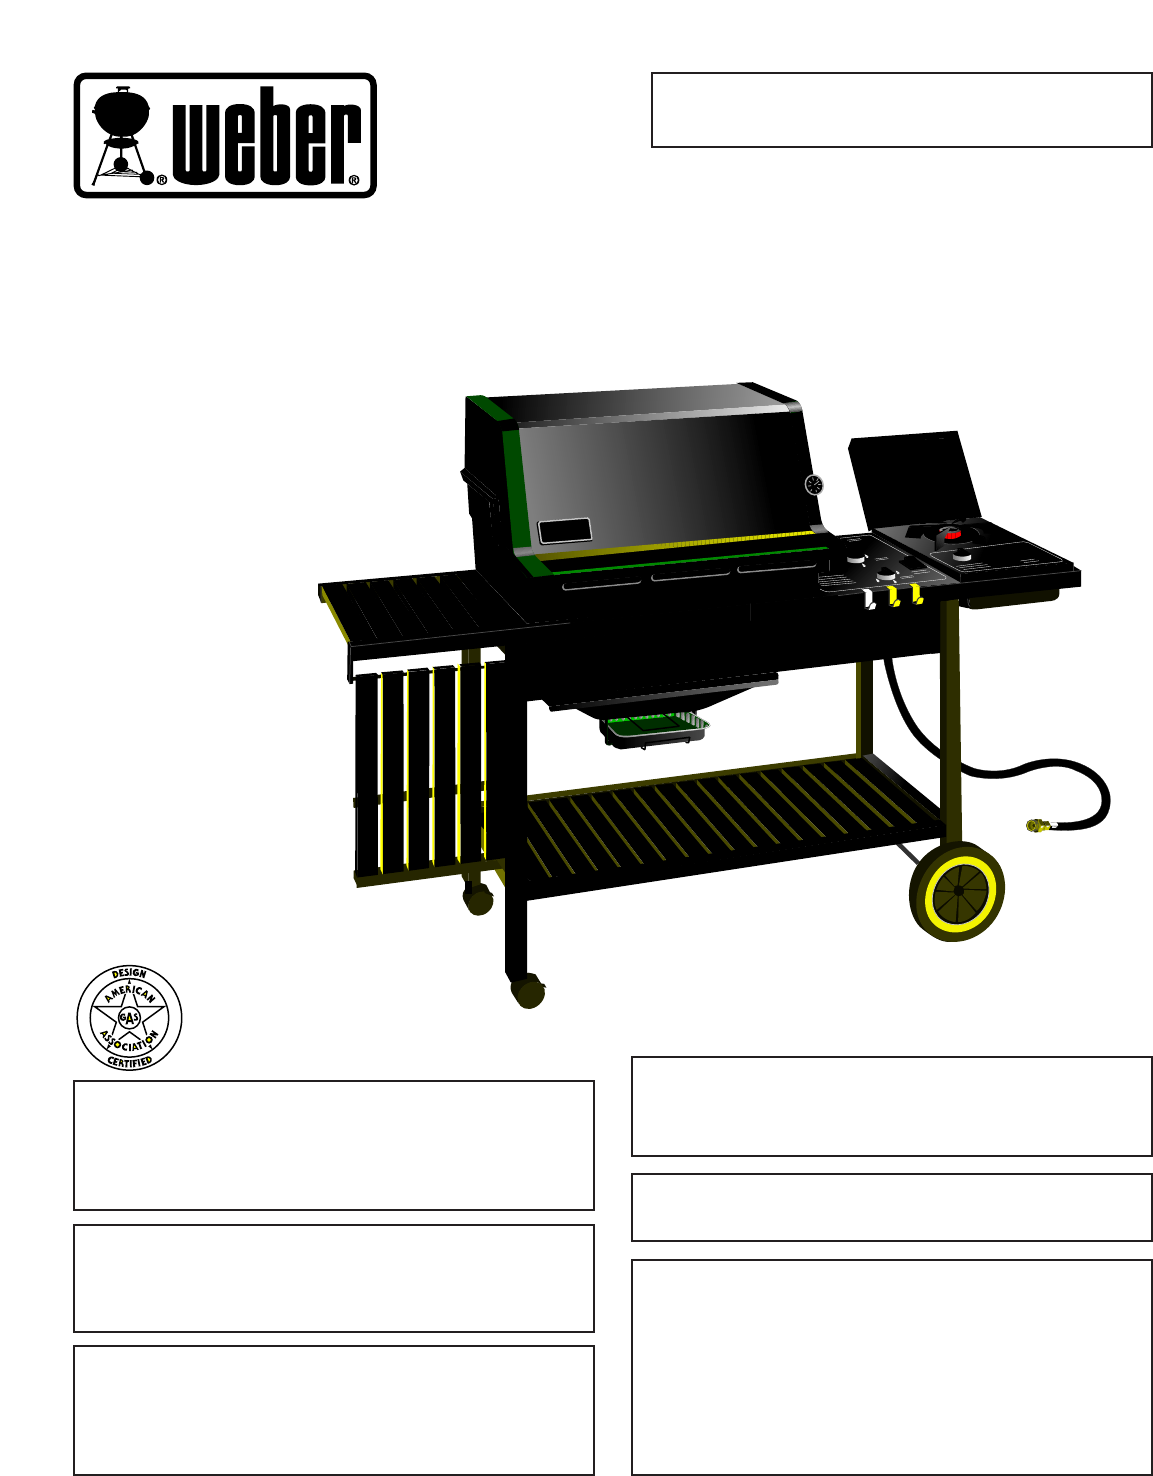 weber gas grill 3000 series user guide. Black Bedroom Furniture Sets. Home Design Ideas